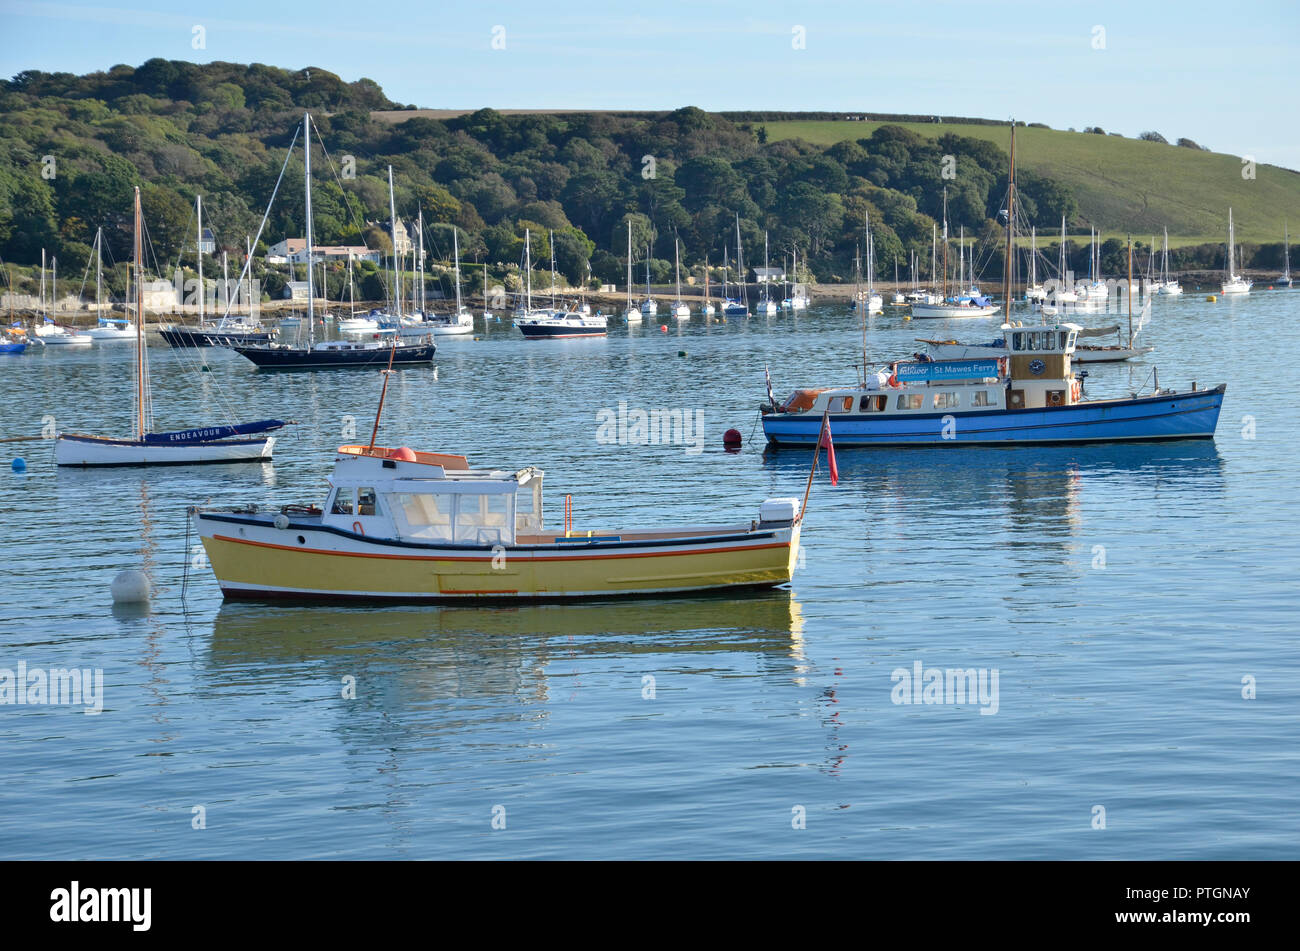 Boats and ferries on the River Fal at Falmouth in Cornwall, England Stock Photo